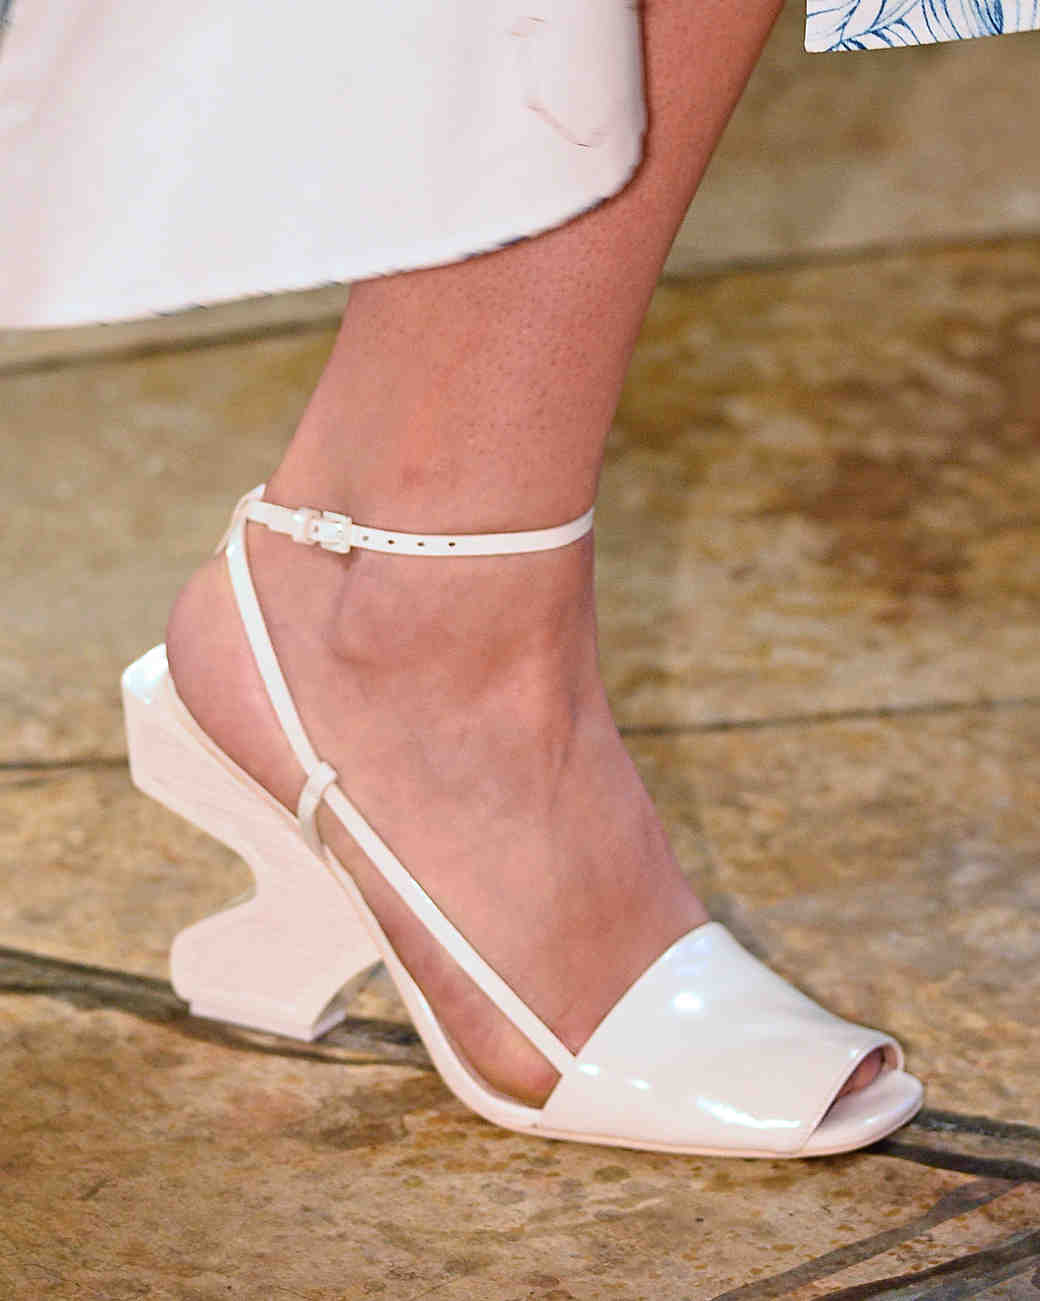 sp16-nyfw-bridal-accessories-tory-burch-shoes-0915.jpg